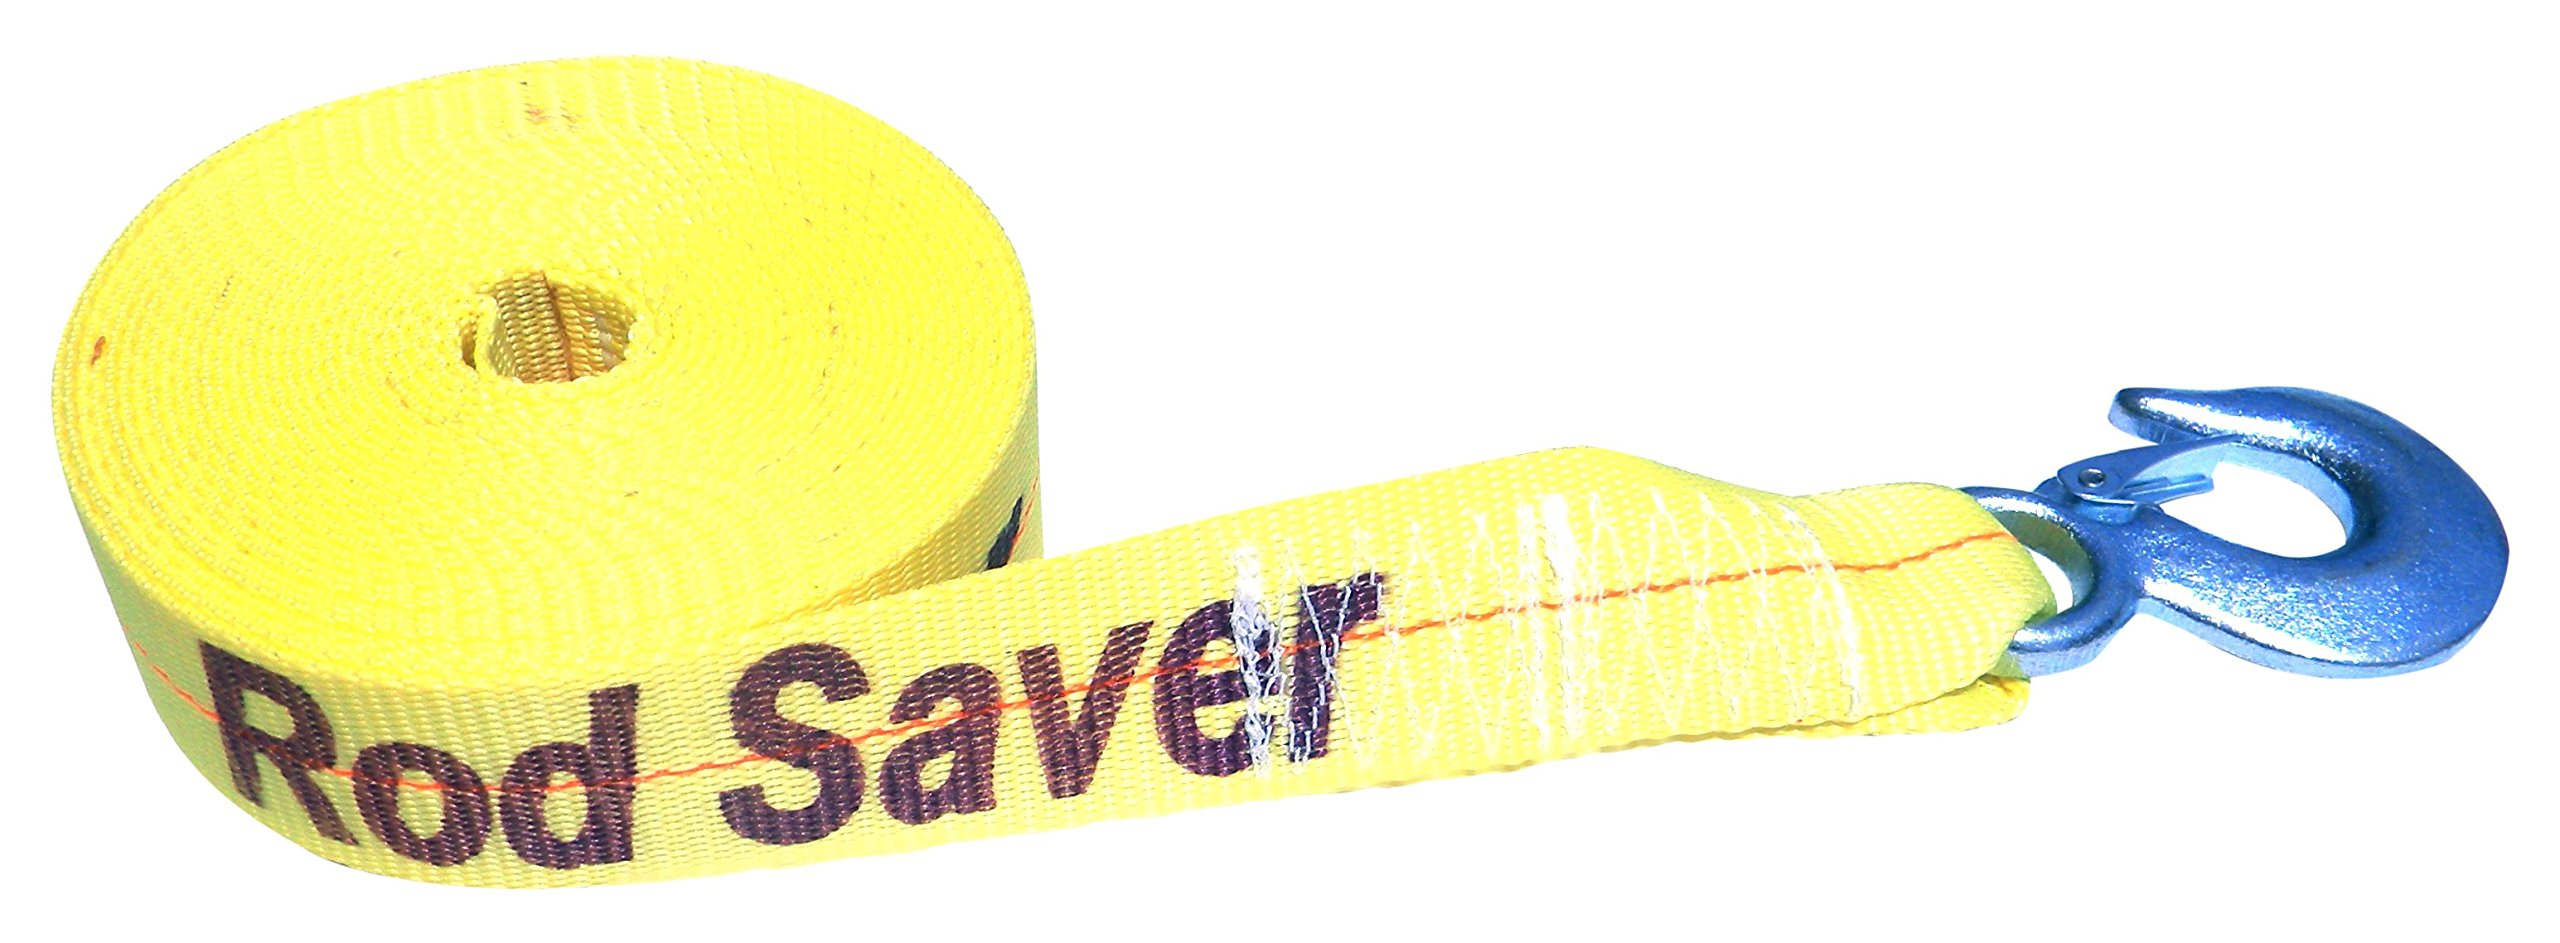 Rod Saver Heavy Duty Replacement Winch Strap, 30' by Rod Saver